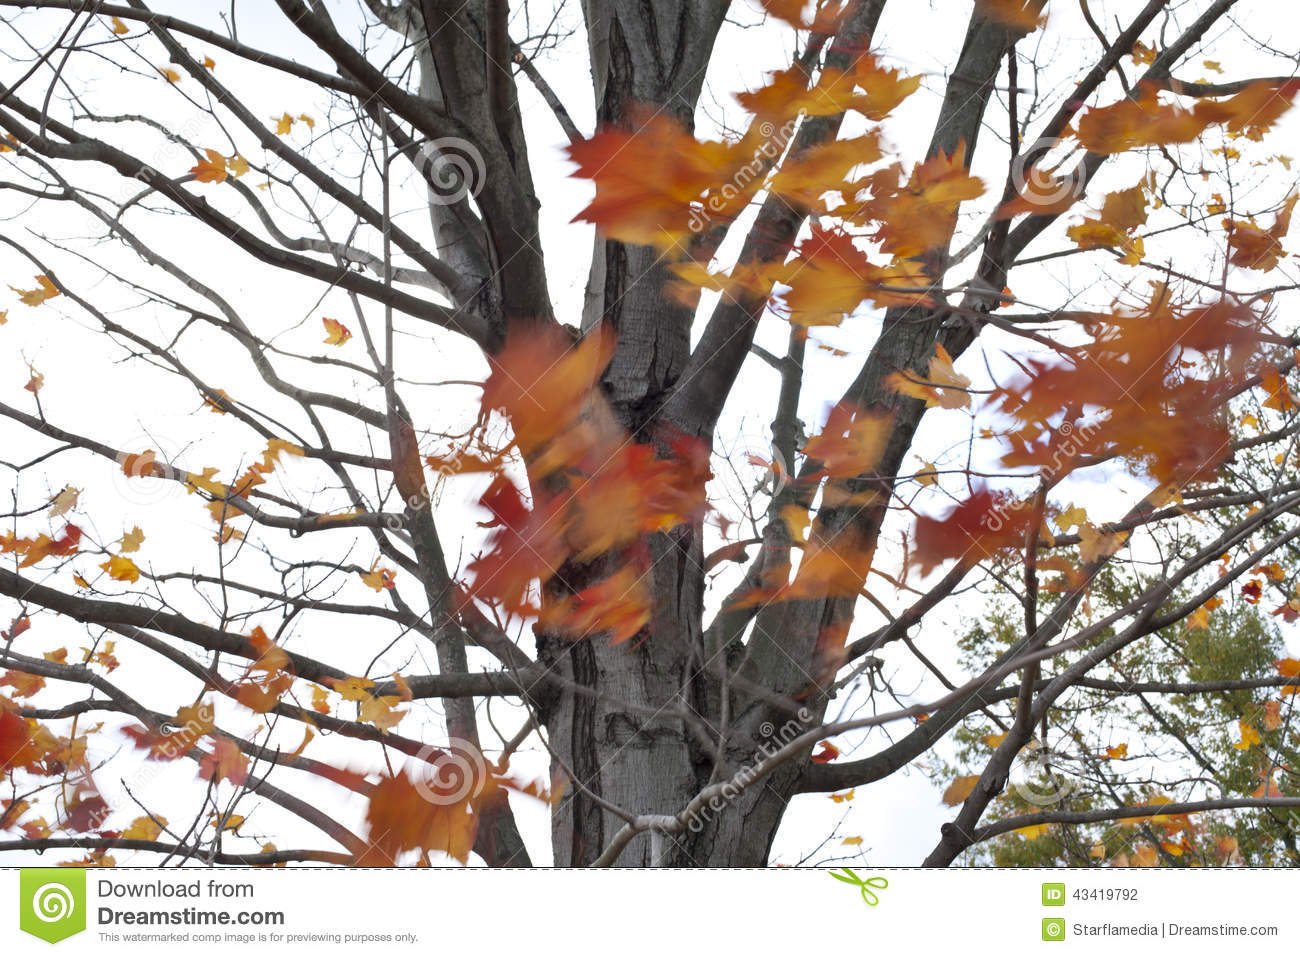 Leaves blowing off trees